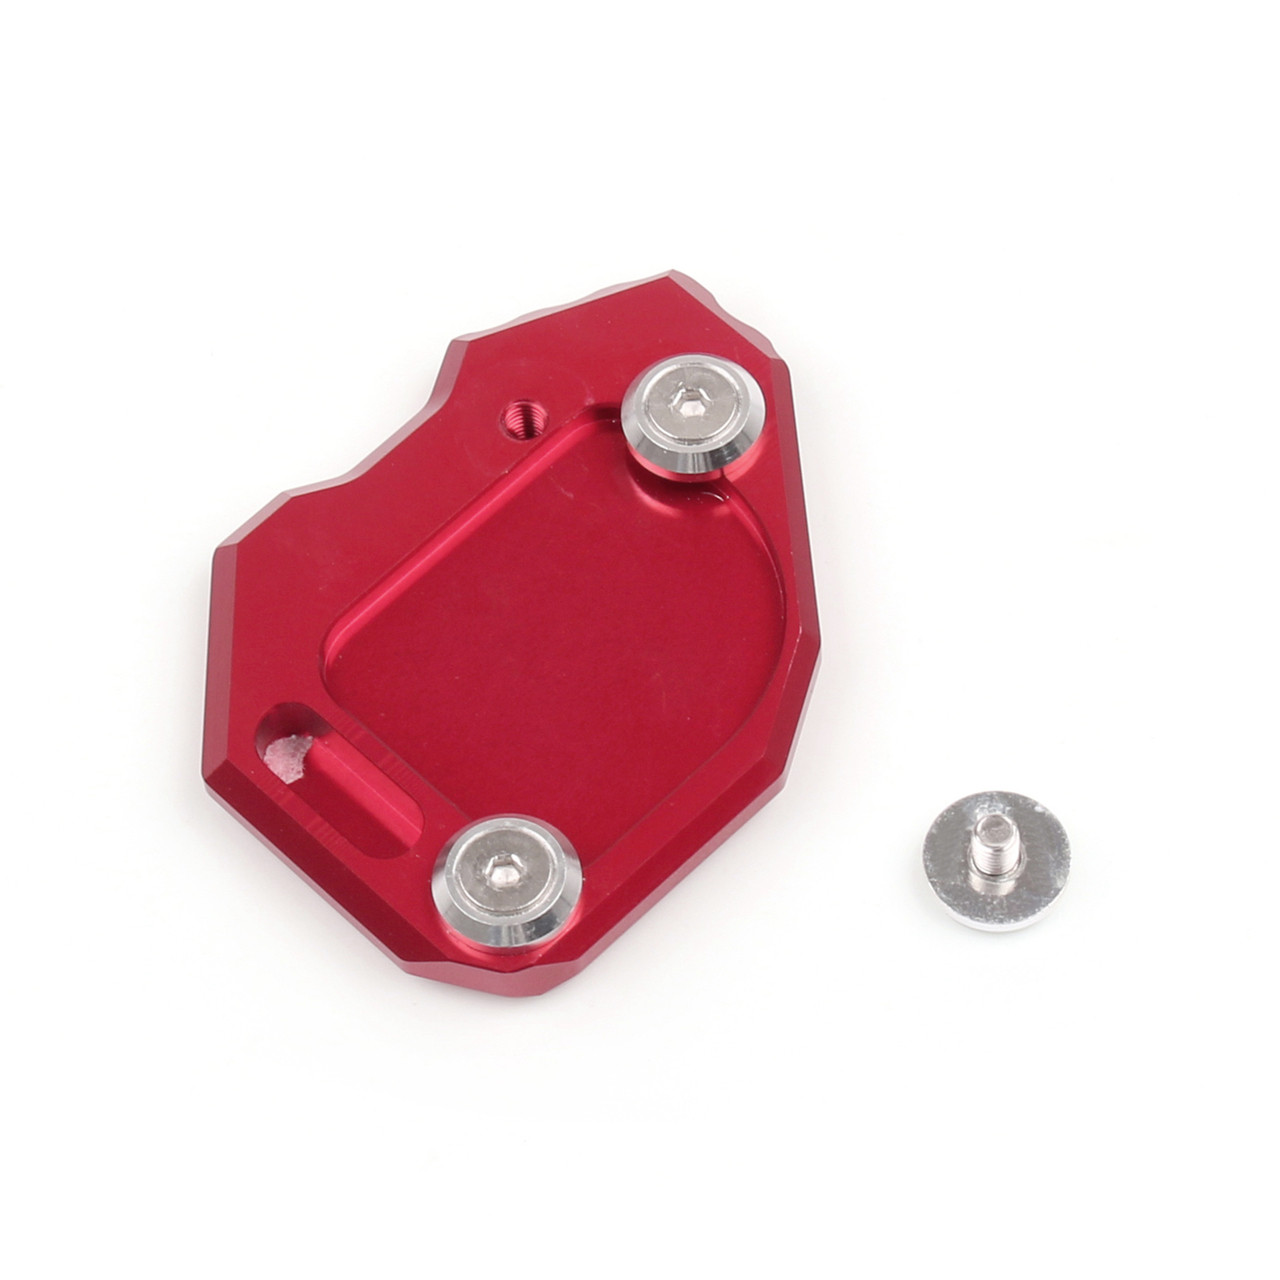 Kickstand Shoe Extension Plate Pad Side Stand BMW F800GS F800 GS (2008-2013) Red